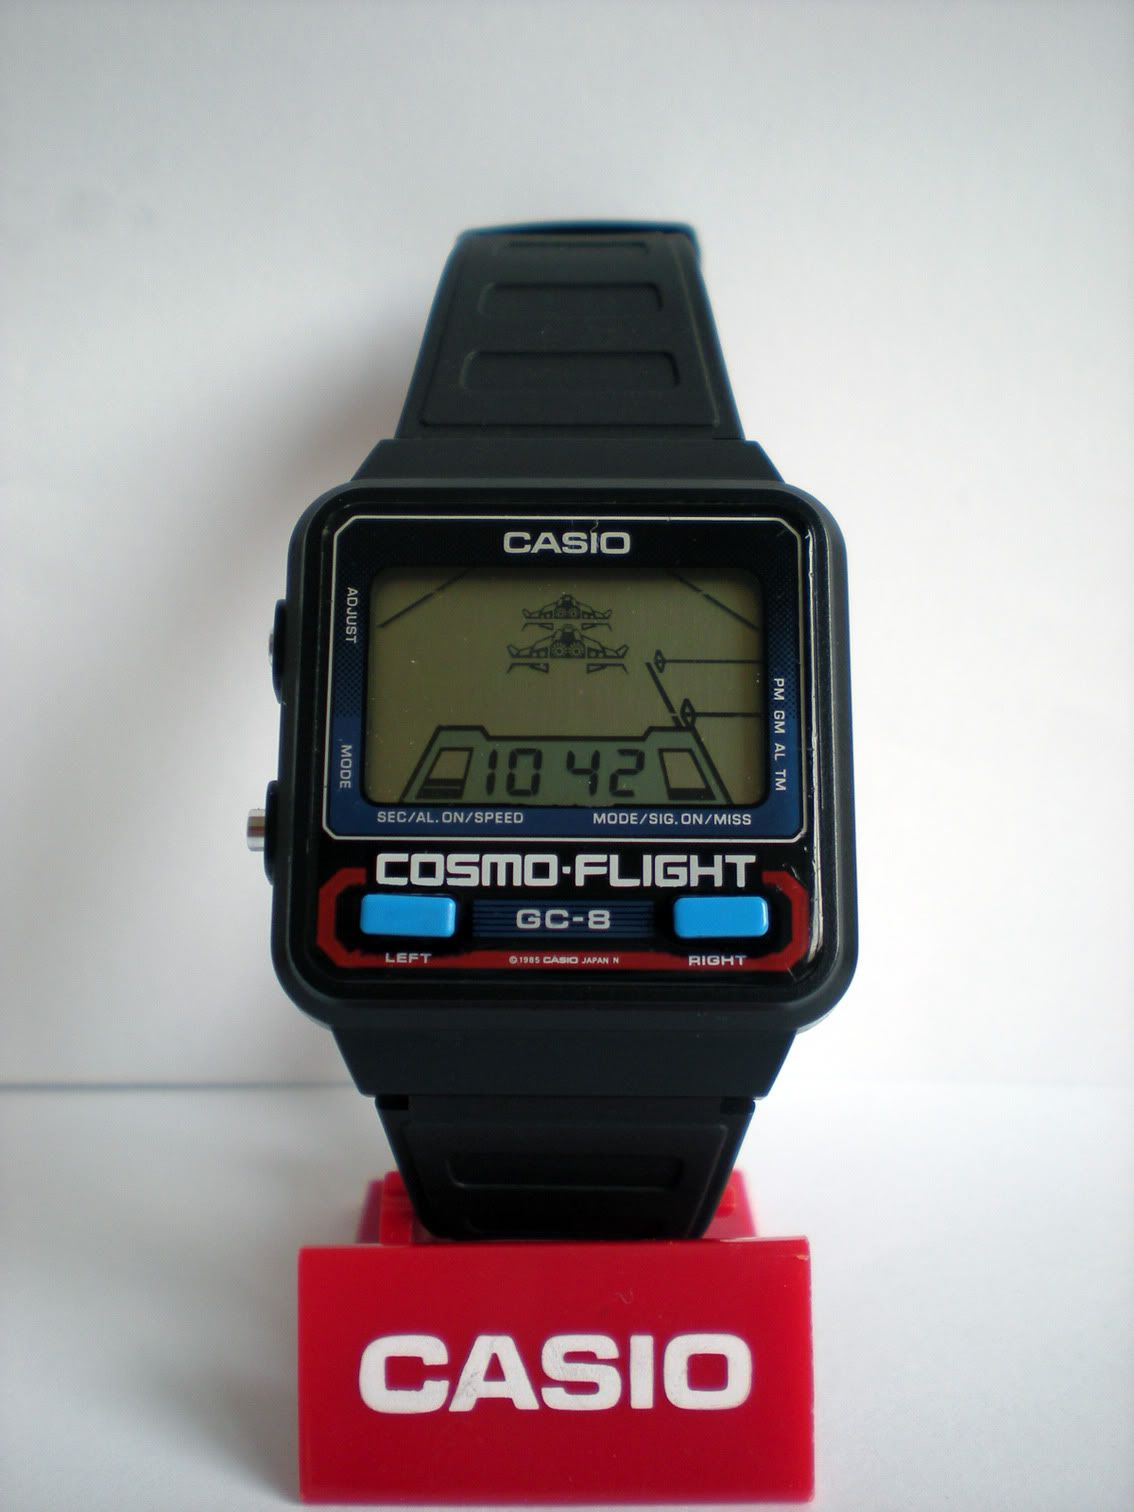 b9ad7907fc2 Casio Vintage Collection by Super hectorus ITALIA SARDEGNA NU Relógio  Casio